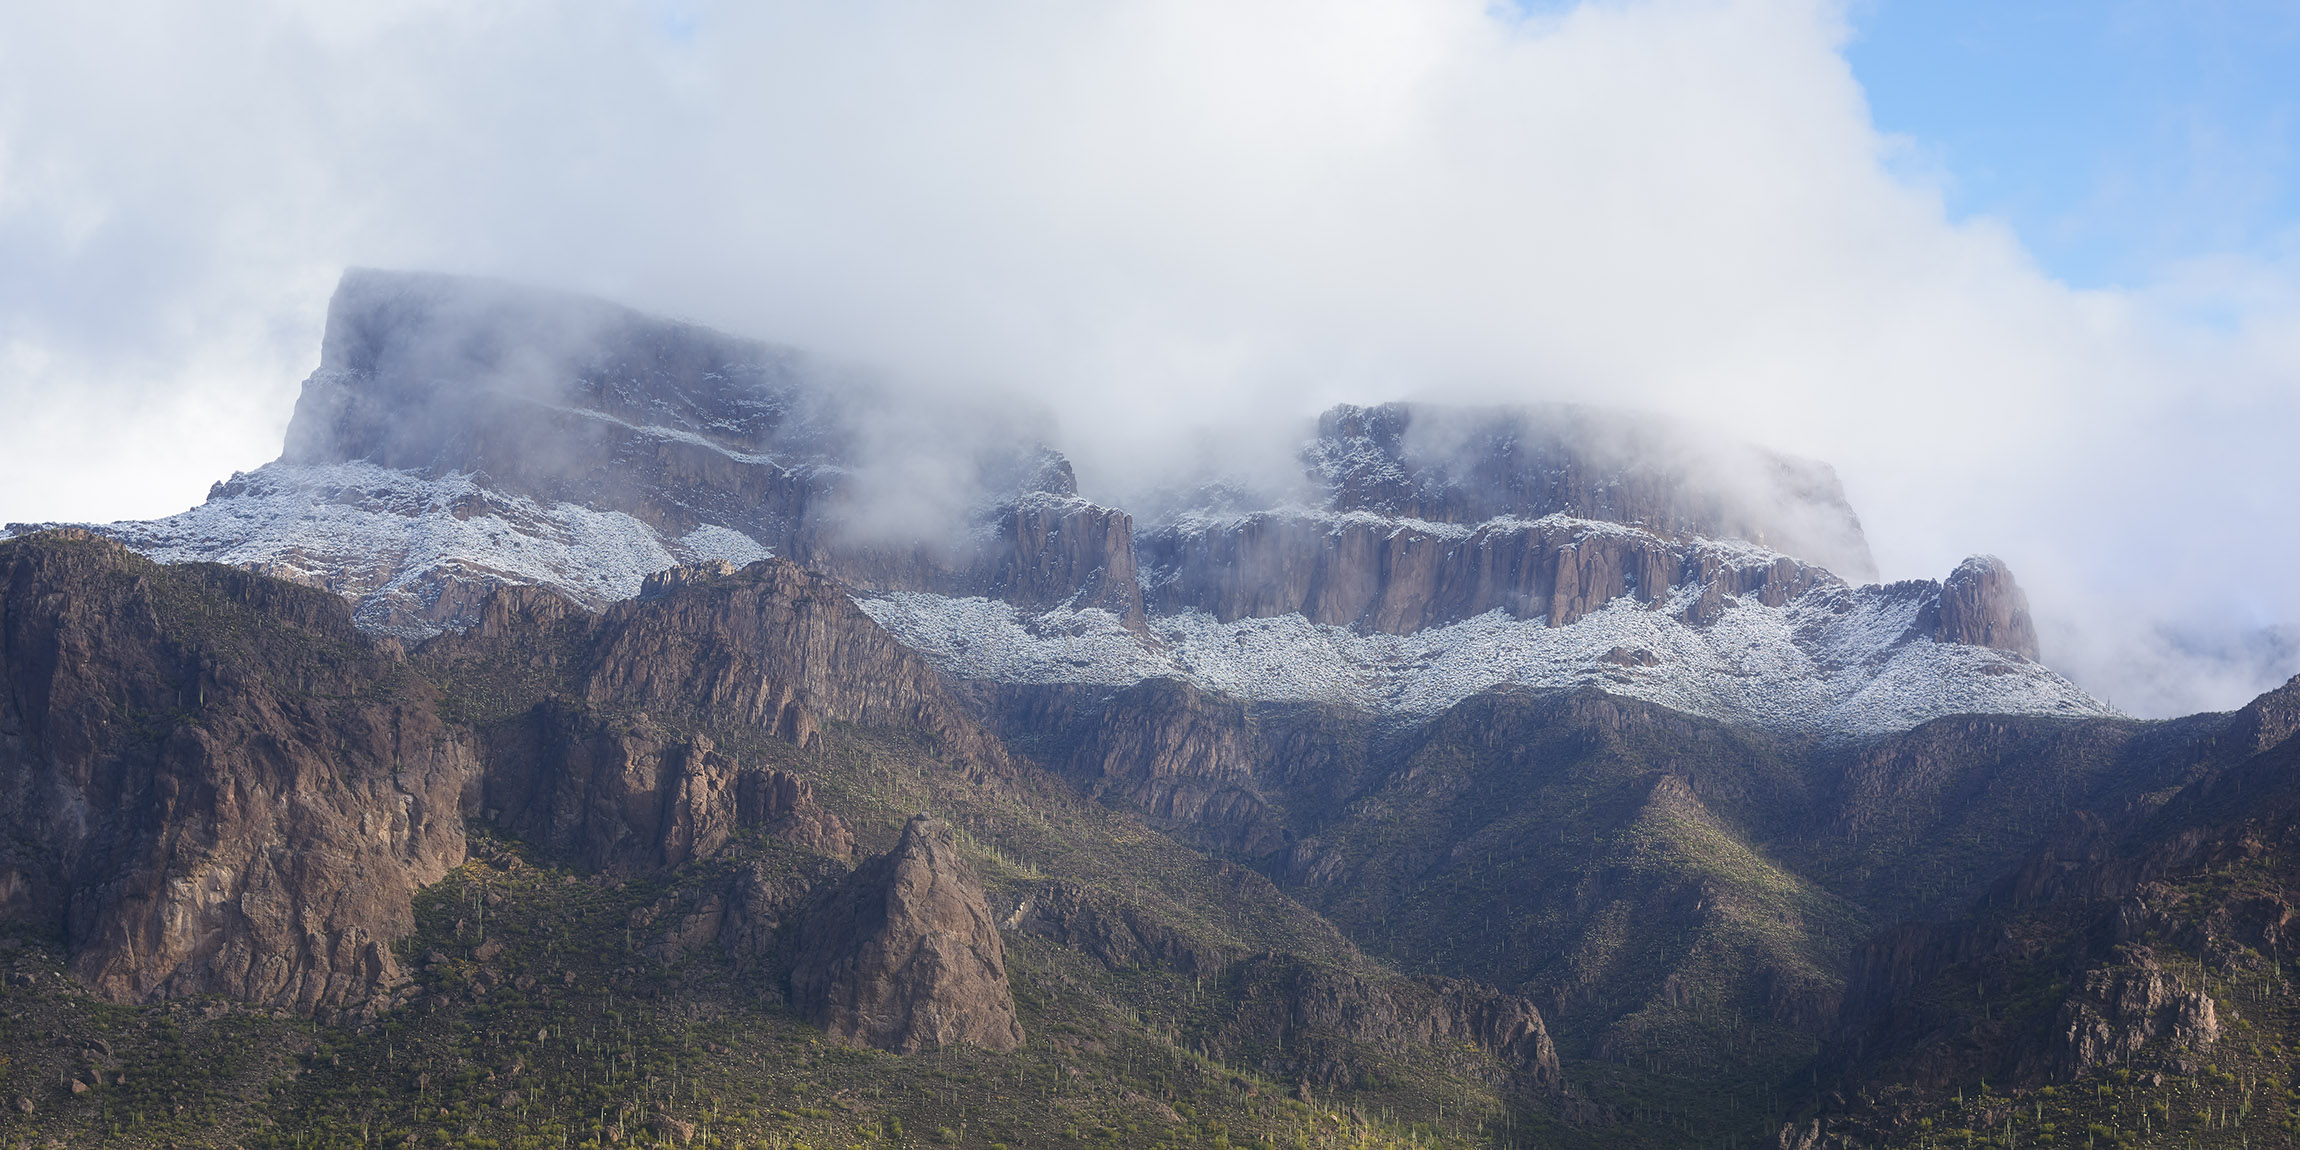 Landscape photo of Superstition Mountain in Arizona covered in snow, arizona landscape photography